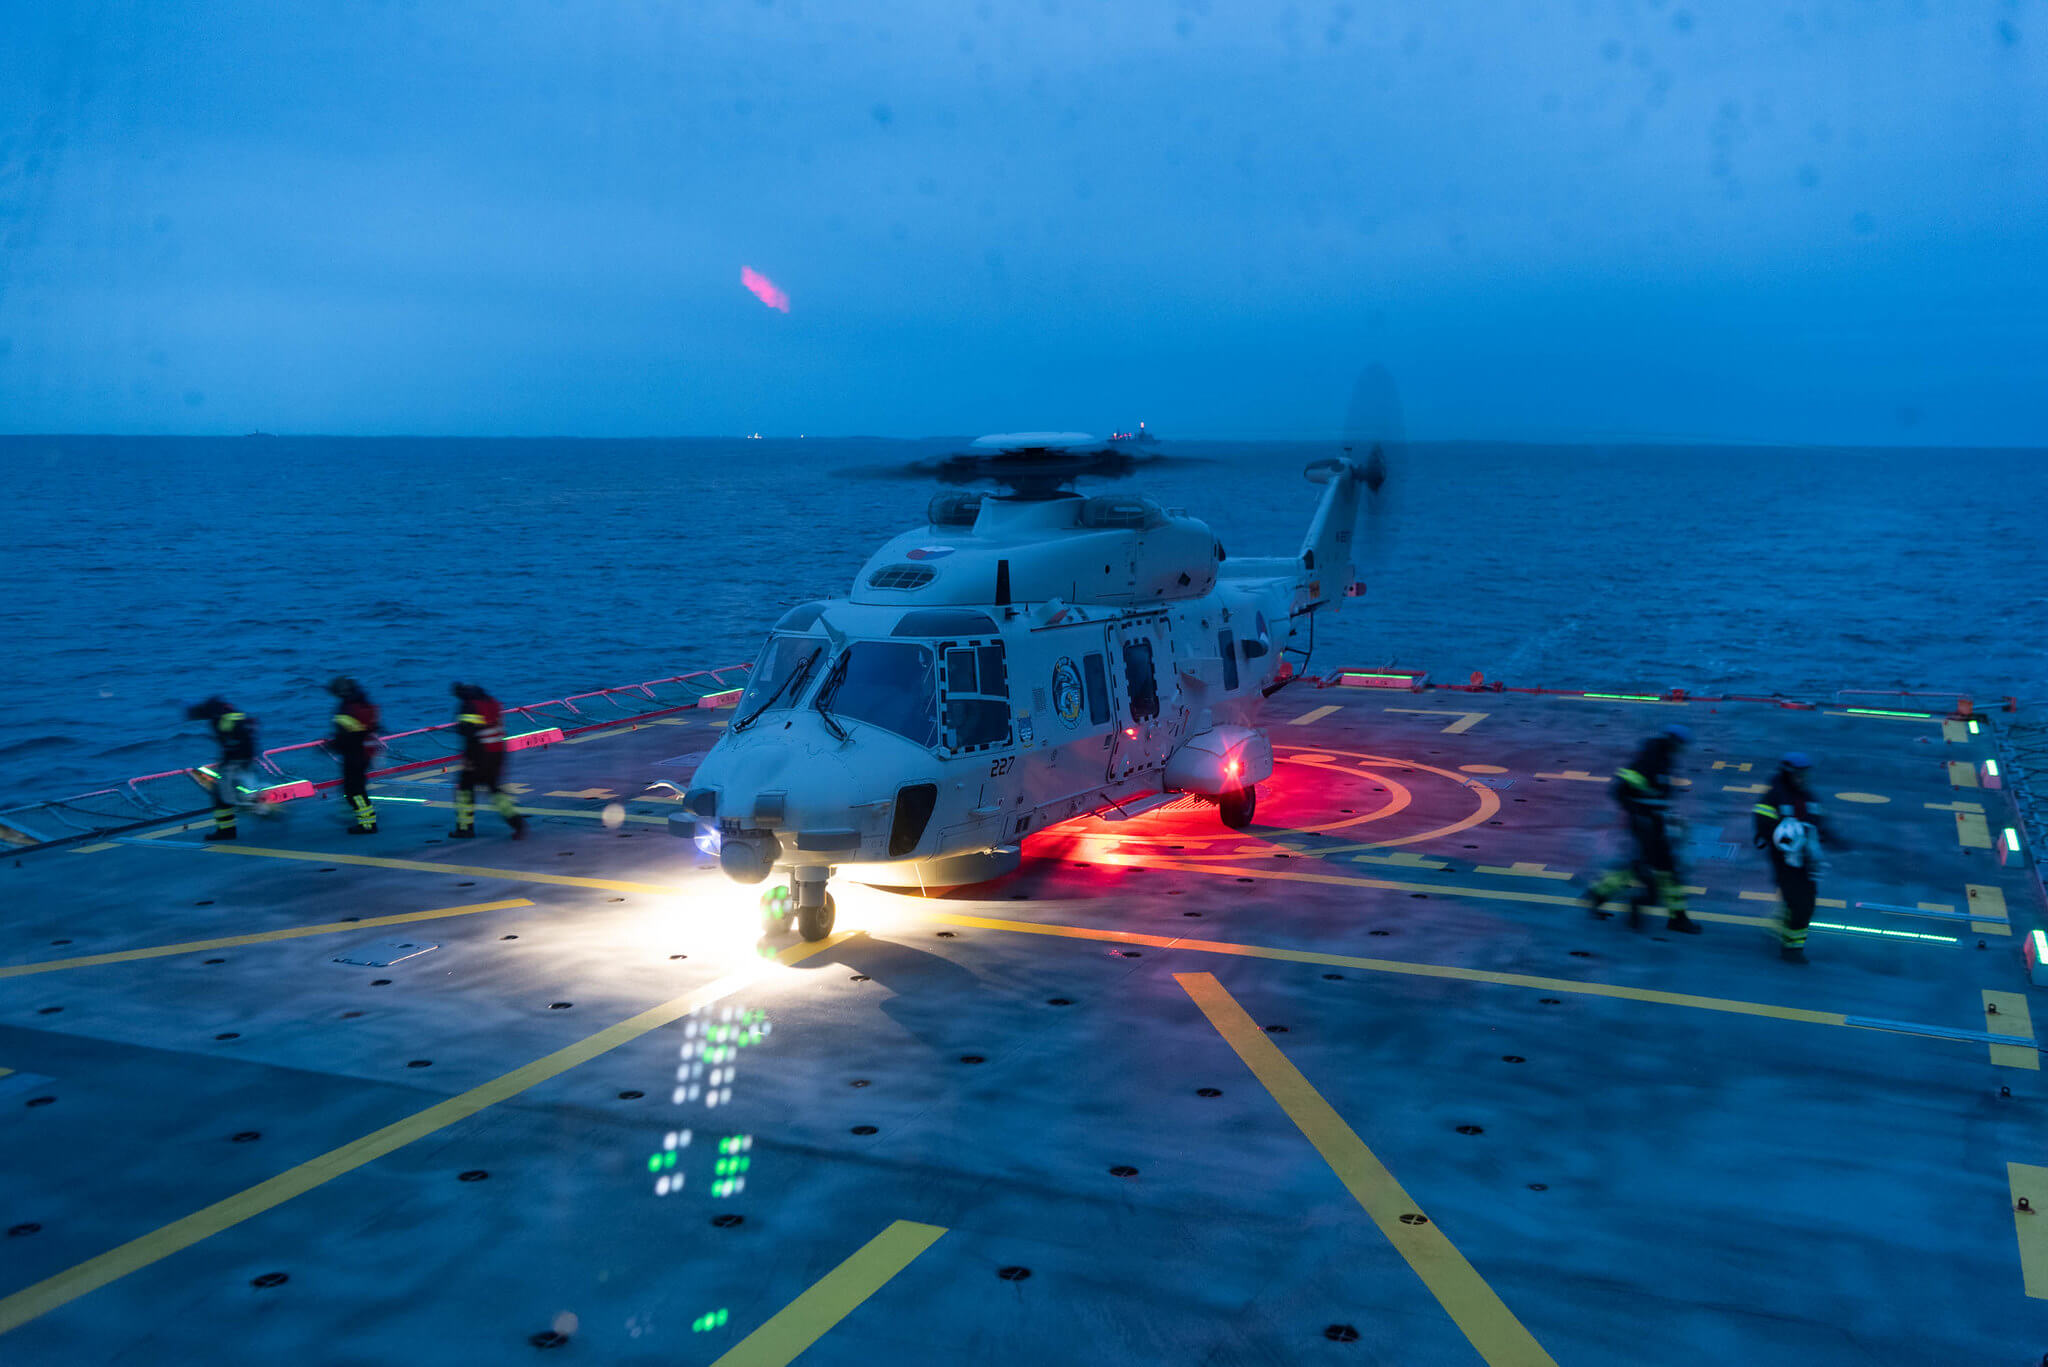 Boxhoorn - A Dutch Navy NH-90 helicopter lands on SNMG1 HDMS Esbern Snare in order to perform a Rotors Running Refuelling (RRR) during Trident Juncture Exercise in 2018. NATO